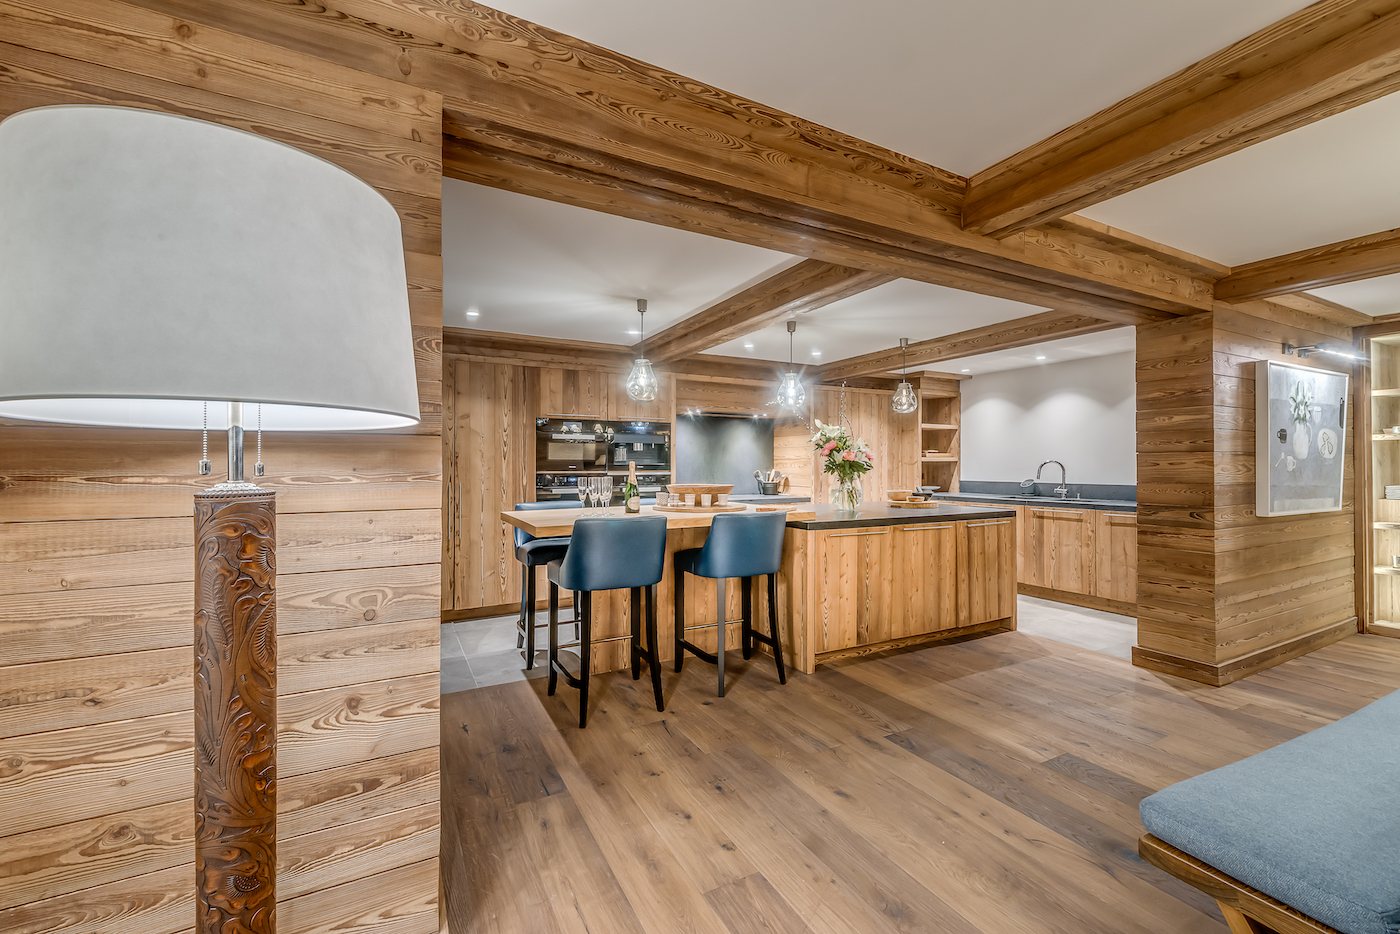 petit-chamois-kitchen-2